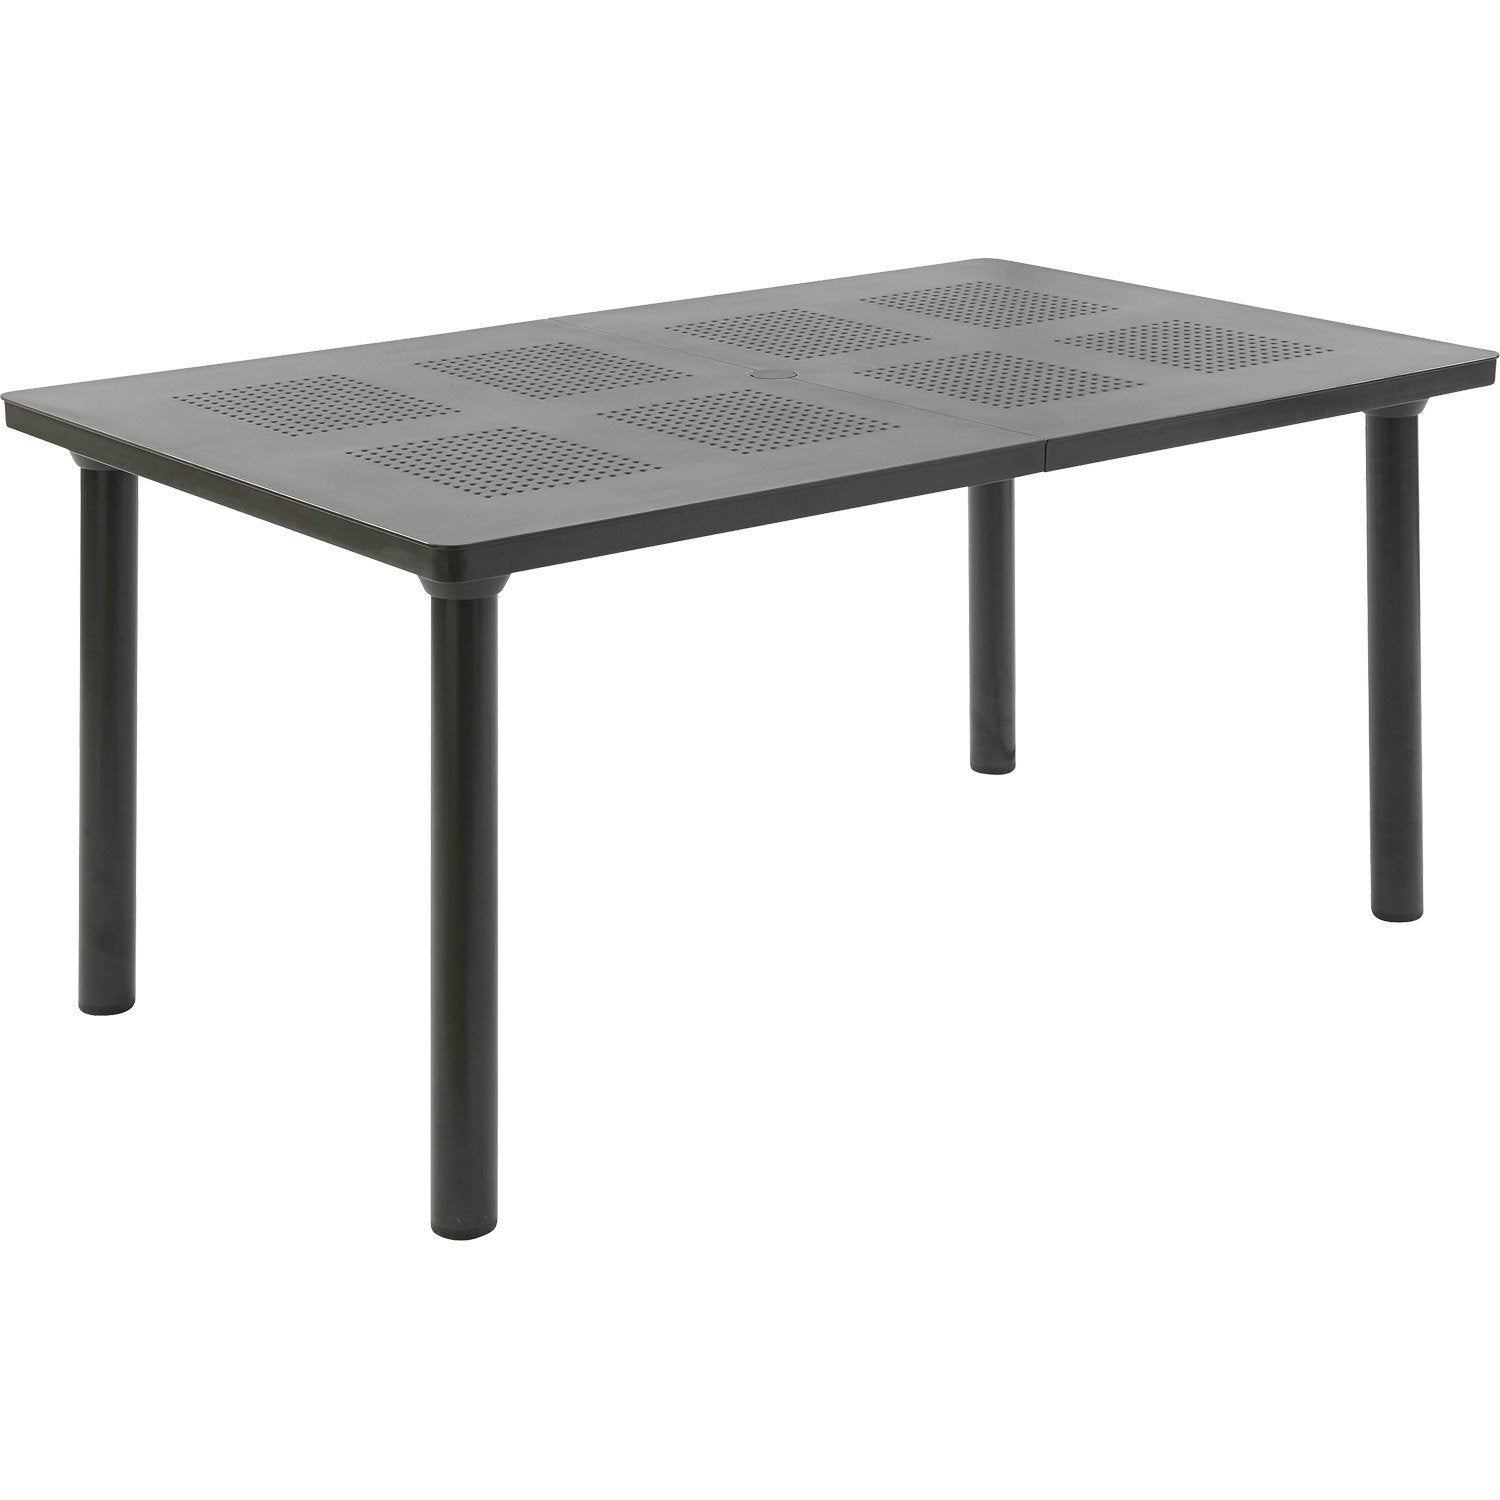 Table de jardin chez leroy merlin for Leroy merlin table jardin